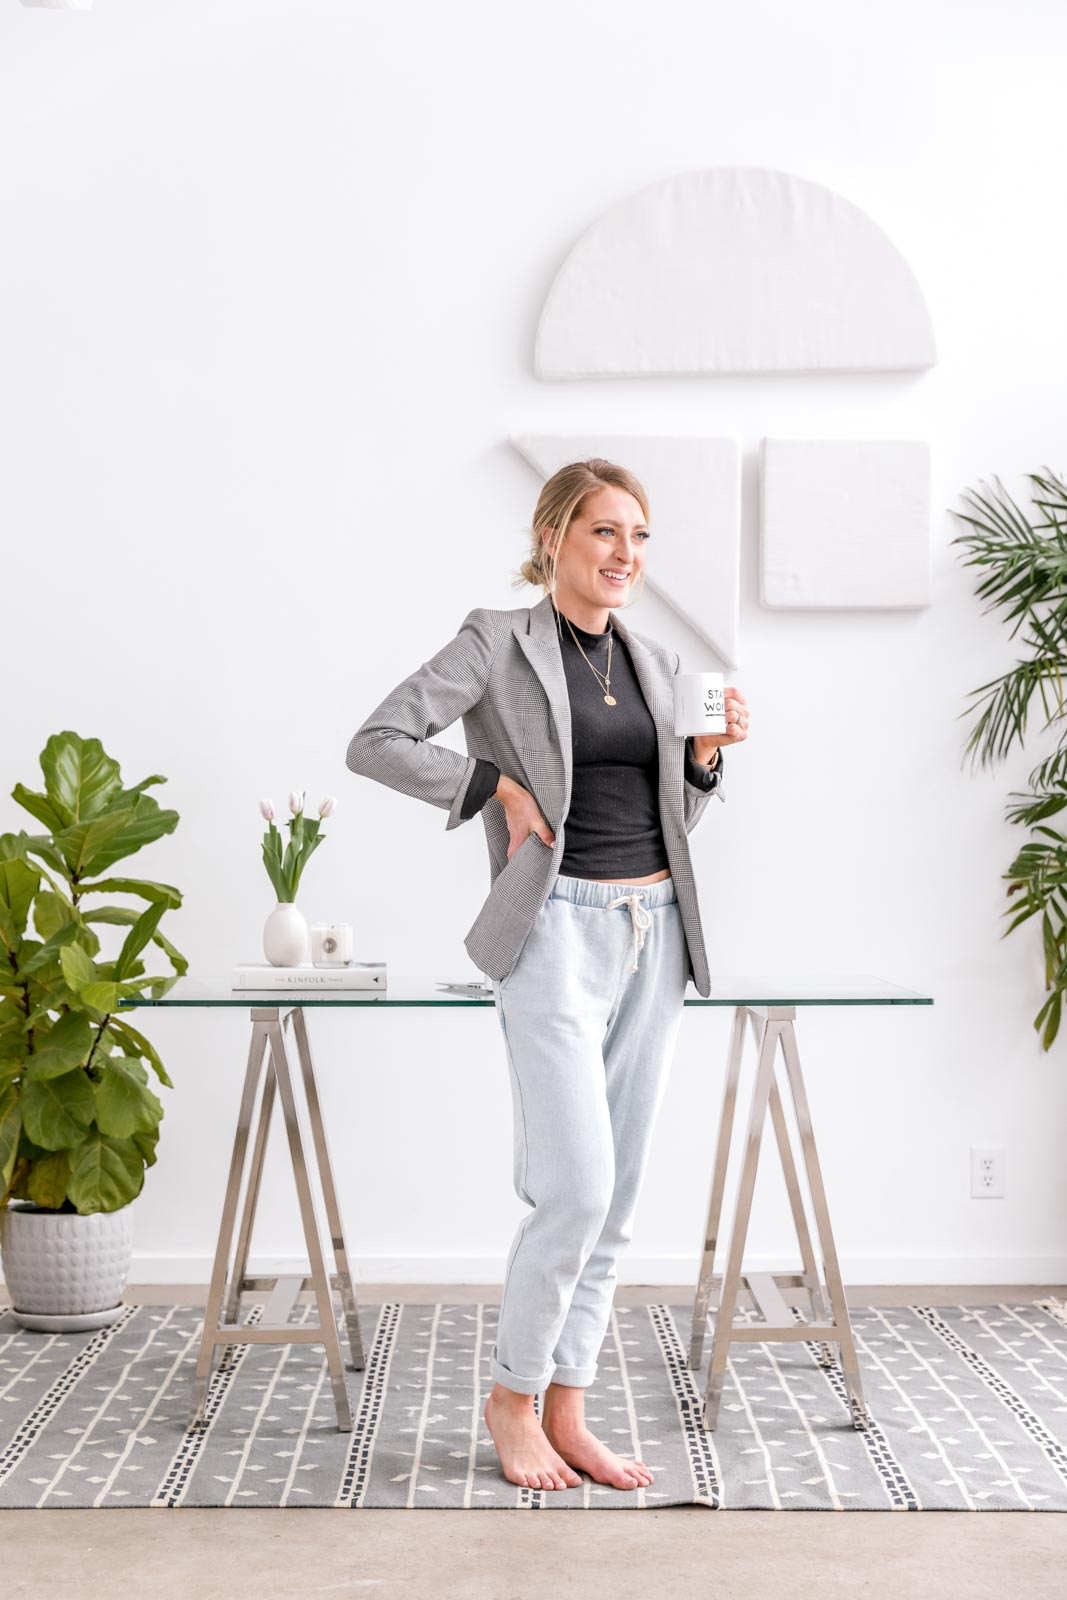 75c76e99390 5 Outfits to Wear When You Work From Home - Broma Bakery